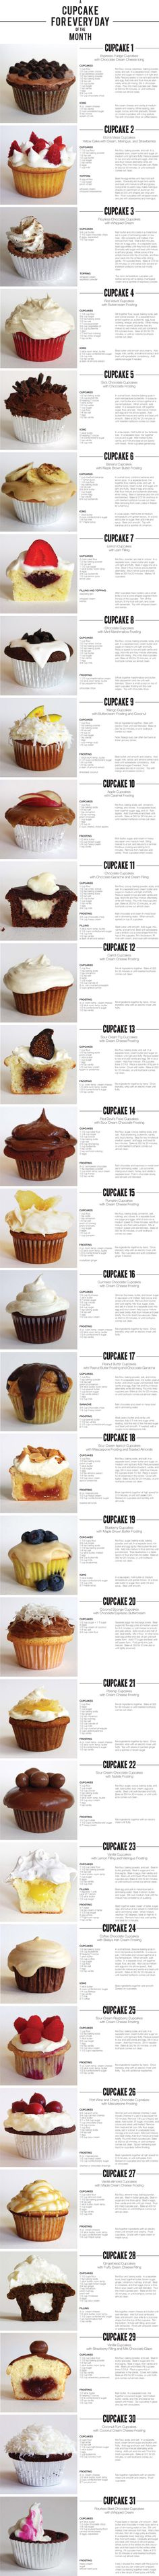 A cupcake for every day of the month.